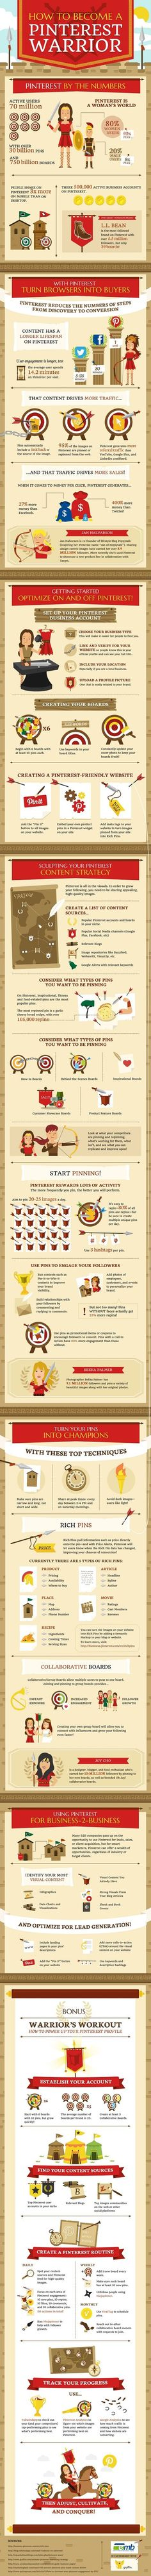 Nice infographic describing how to become a Pinterest warrior.  Interesting part is on the daily part, it states use Ninja Pinner.  On the monthly part, it starts unfollow those that use Ninja Pinner. lolol  Click to read more.